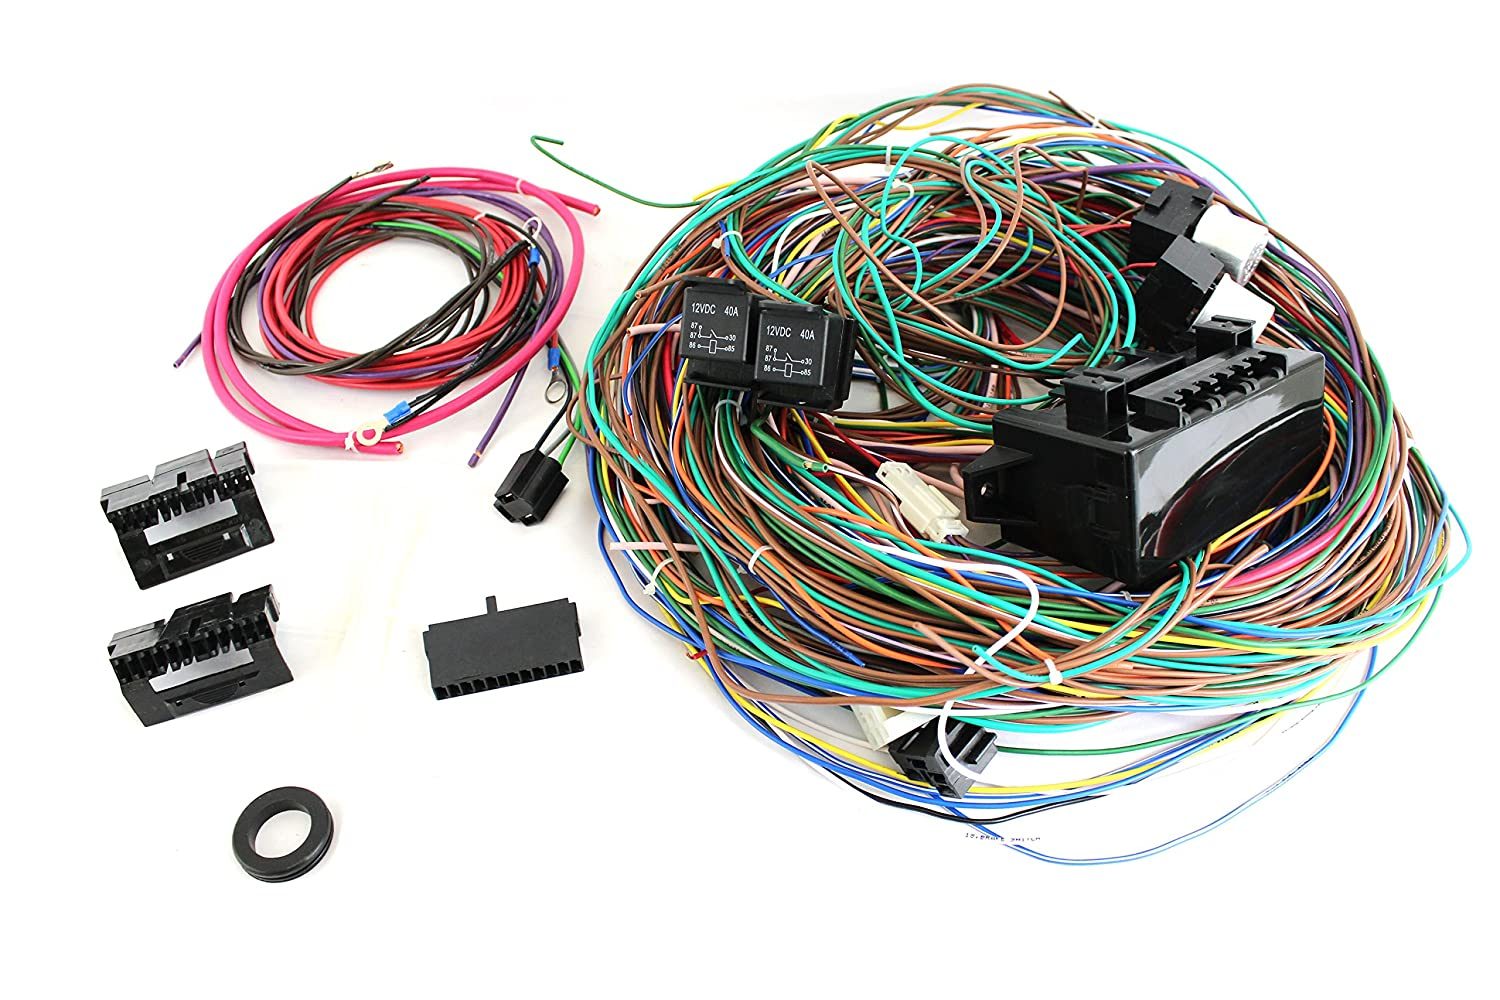 91YoamXFx2L._SL1500_ amazon com 12v 24 circuit 15 fuse street hot rat rod wiring 8 circuit wiring harness at nearapp.co